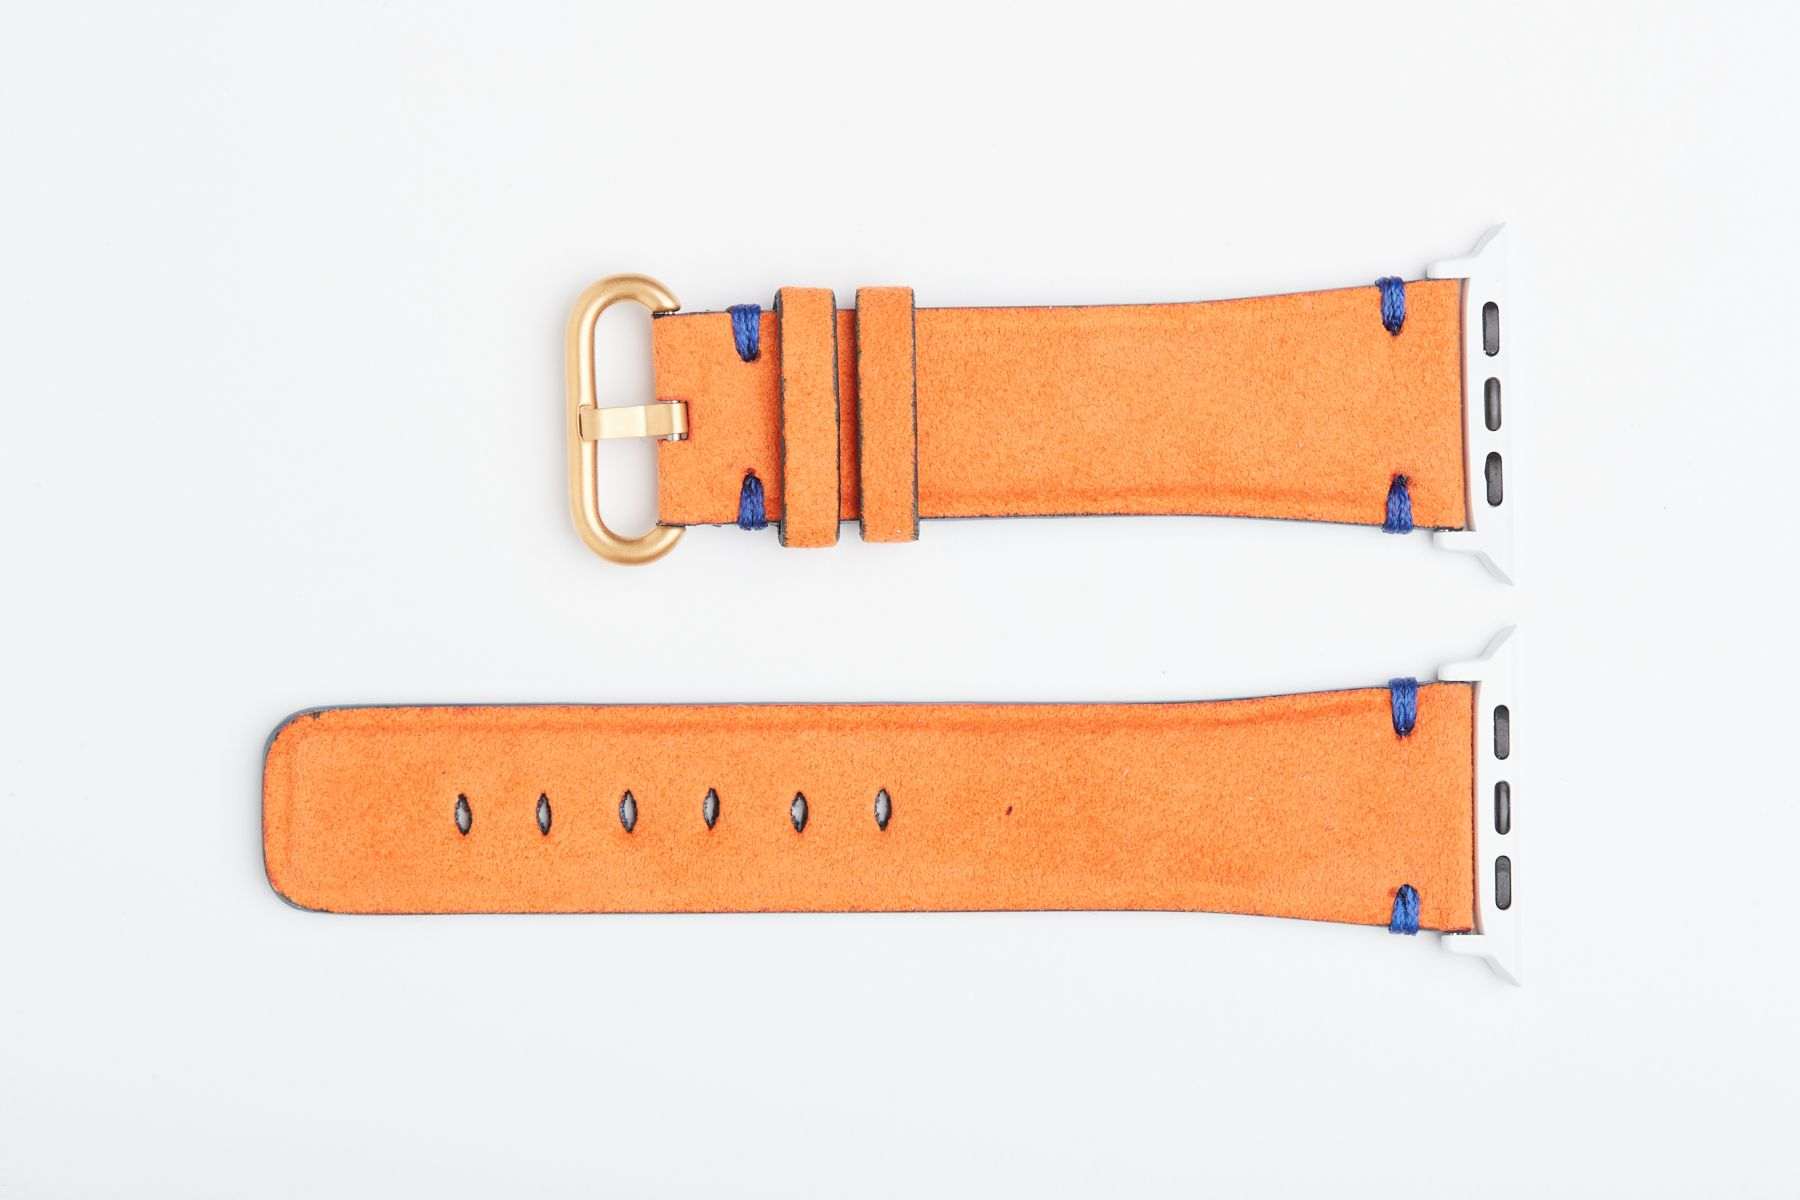 Rio Orange Original Alcantara Strap for 44mm, 42mm case (Apple Watch All Series). Presile stitching. Vegan Style.